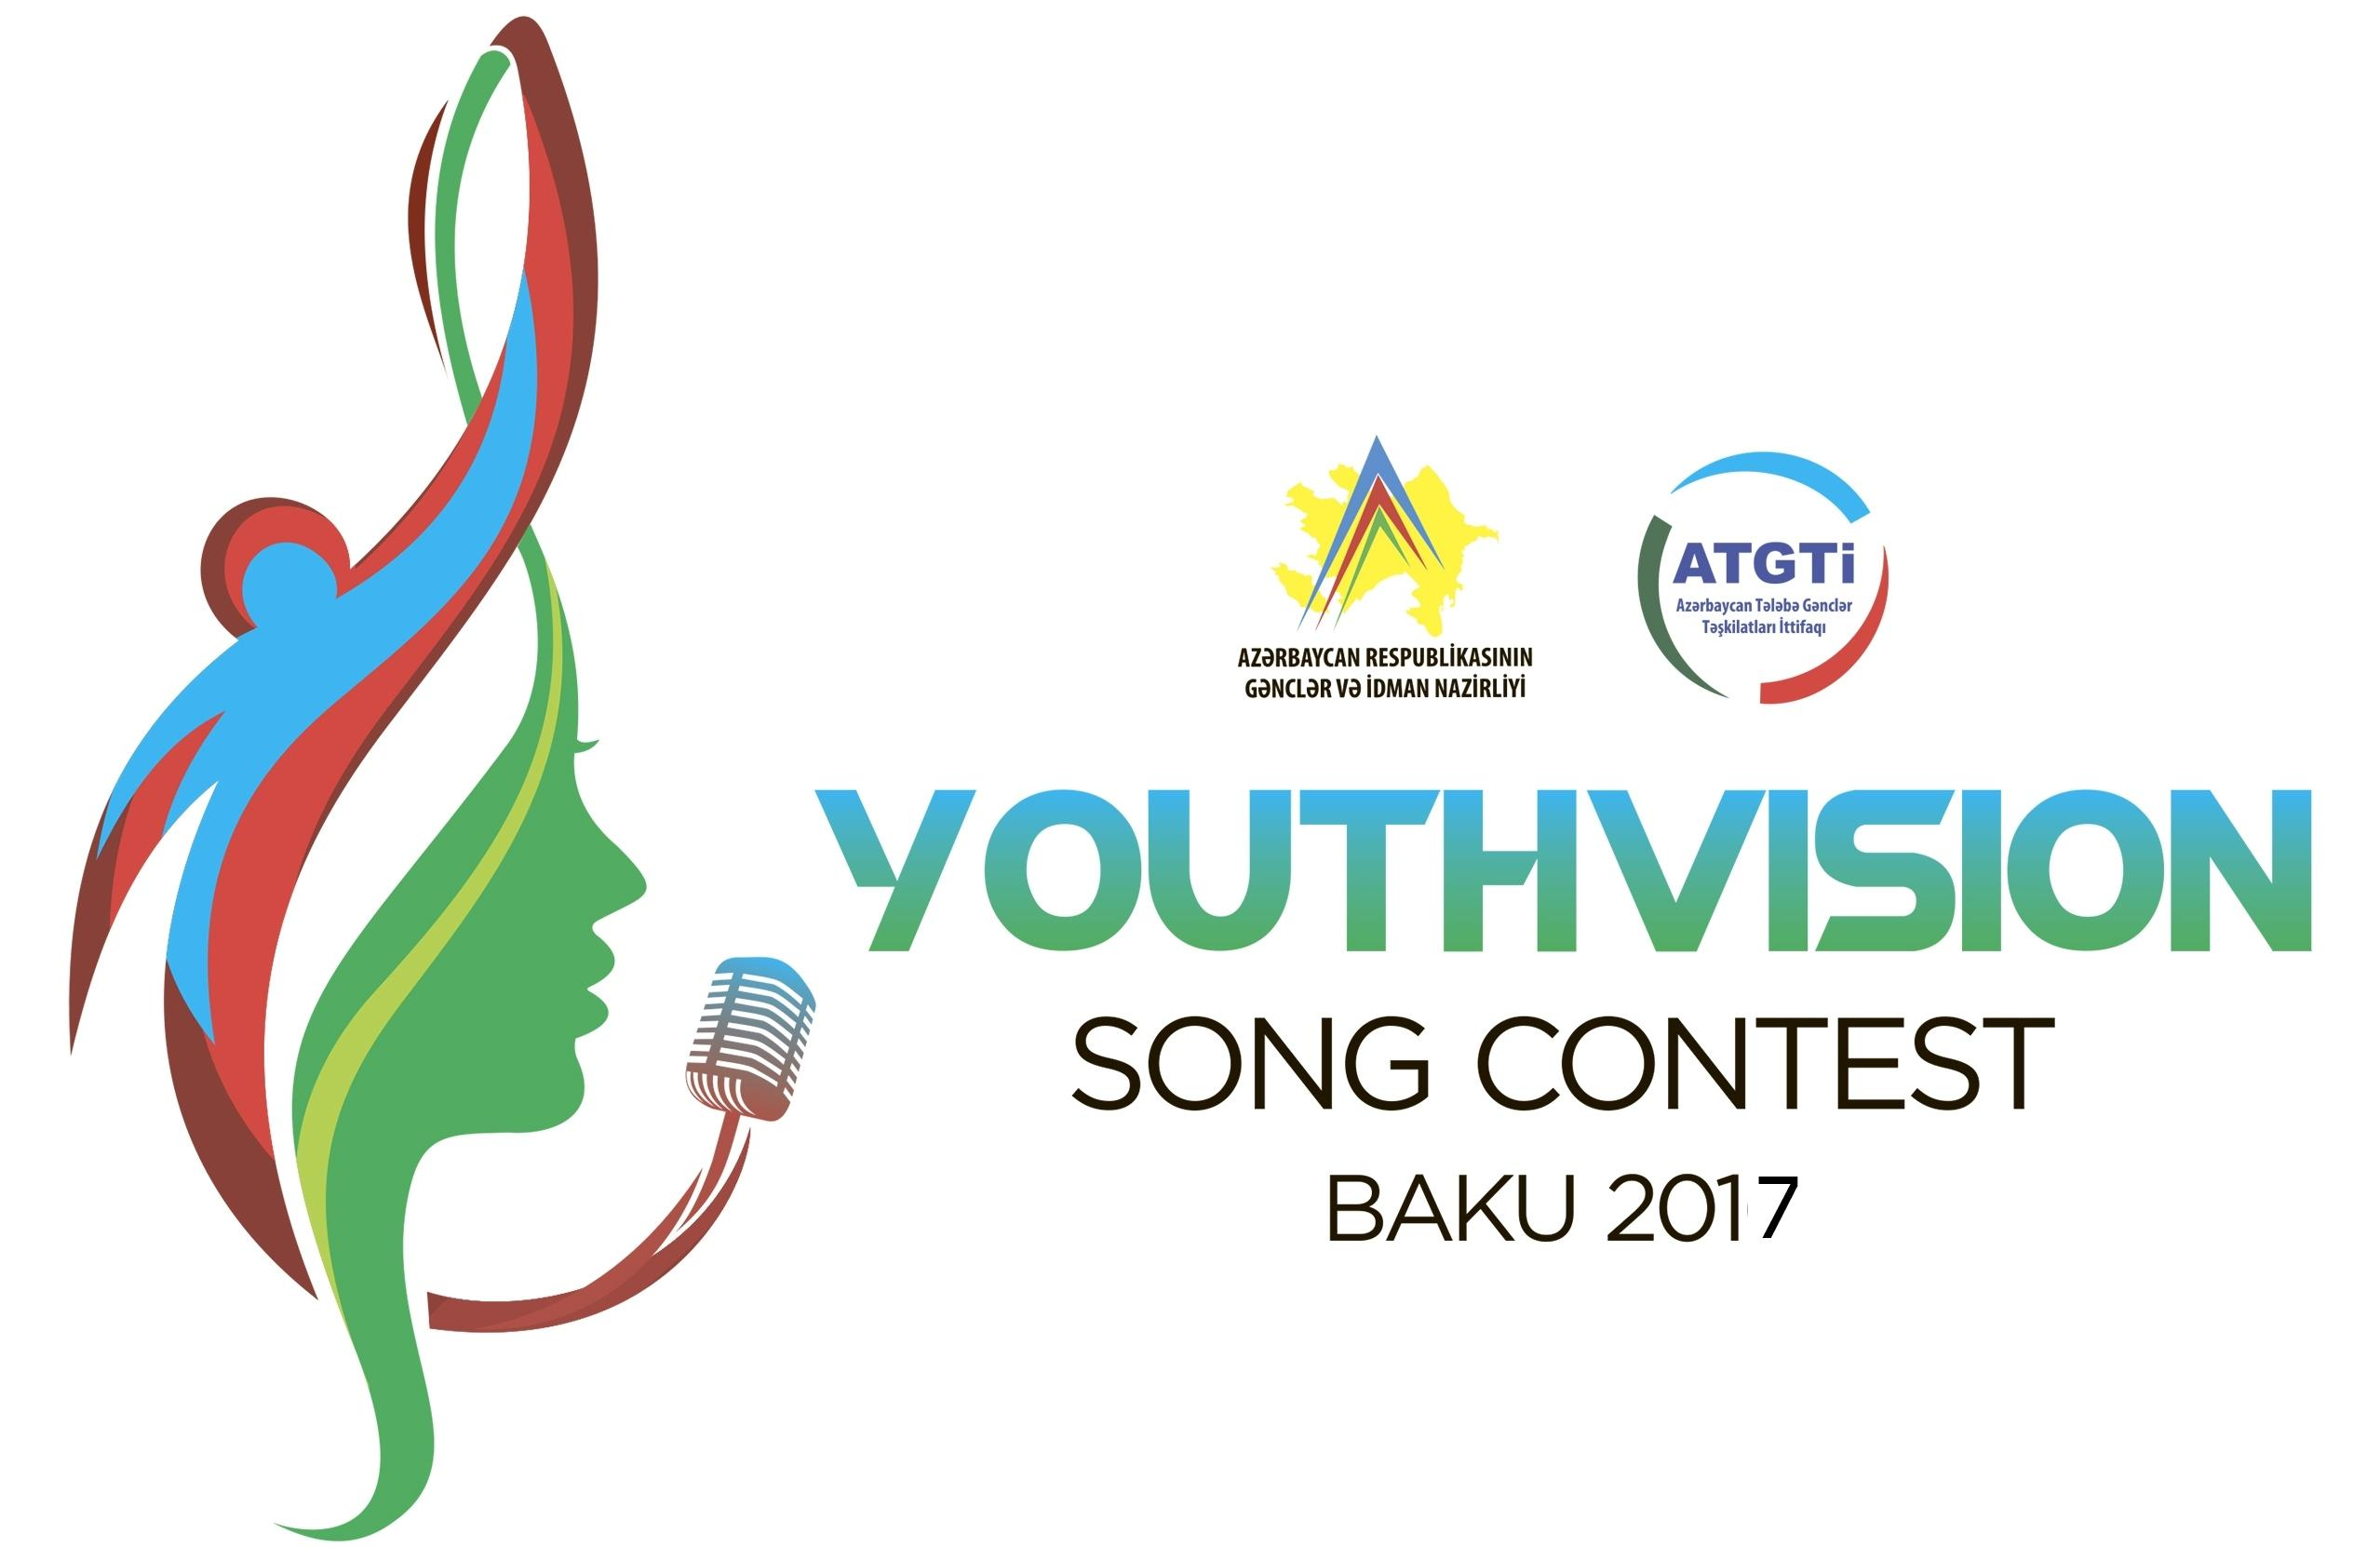 Youthvision II International Song Contest starts in Baku